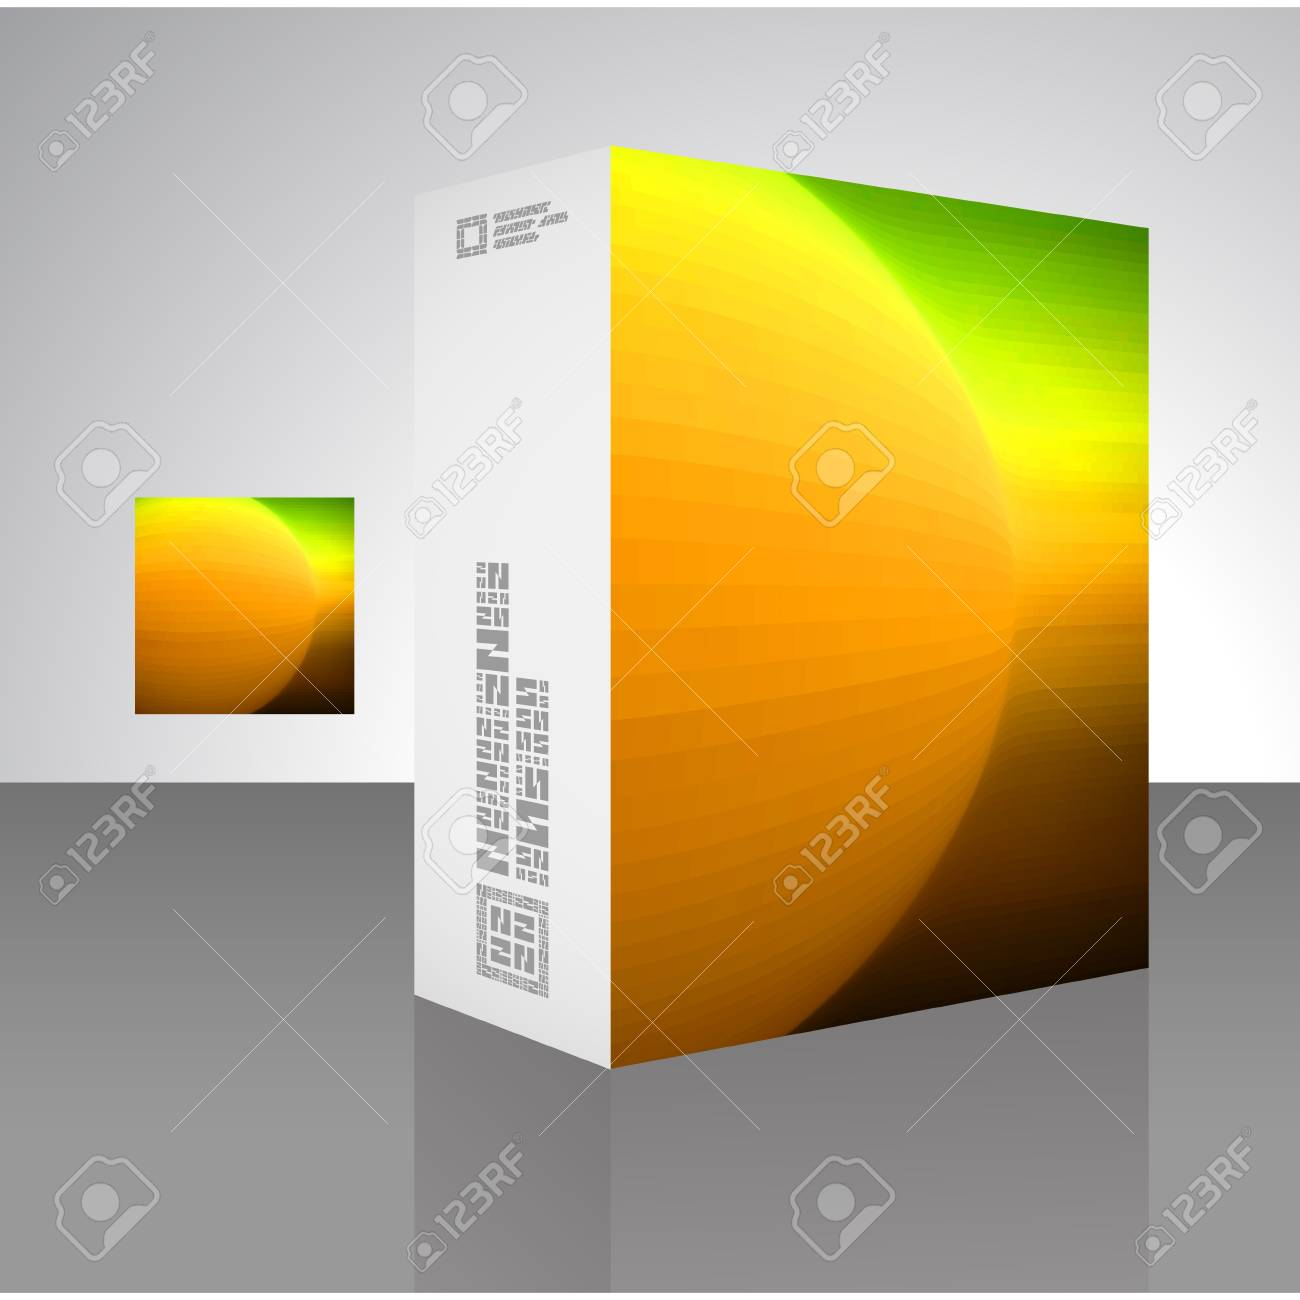 Packaging box Stock Vector - 18352121